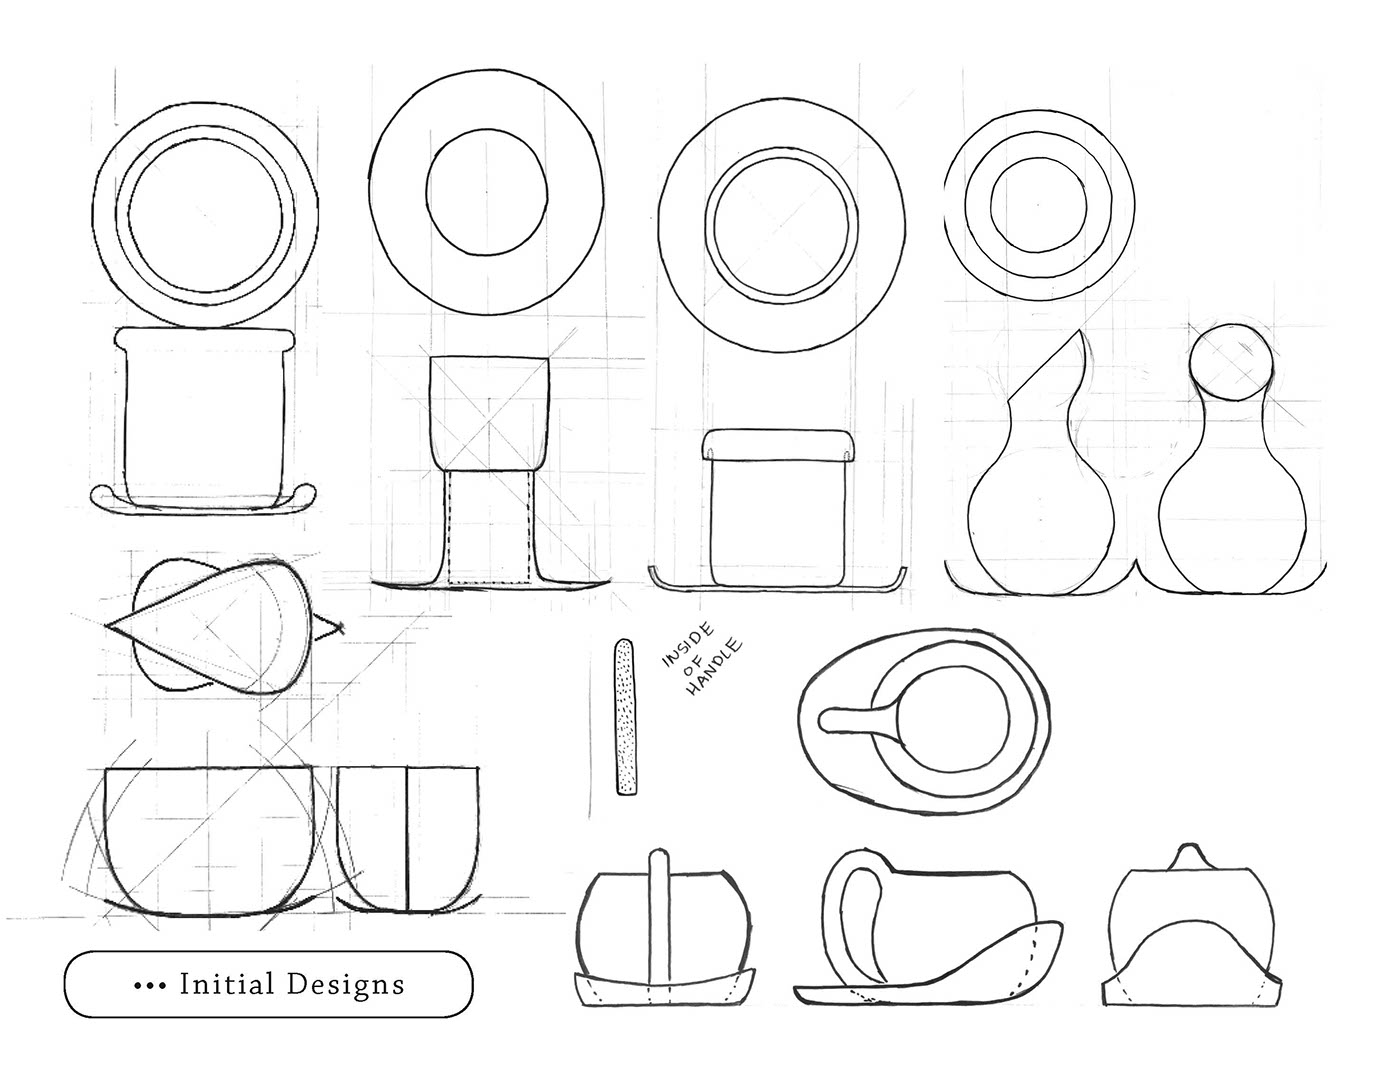 cup saucer sine foam models on behance ID Tech 5 to design a cup and saucer set embodying three words fort warmth longevity ge ia tech school of industrial design id 1011 fall 2016